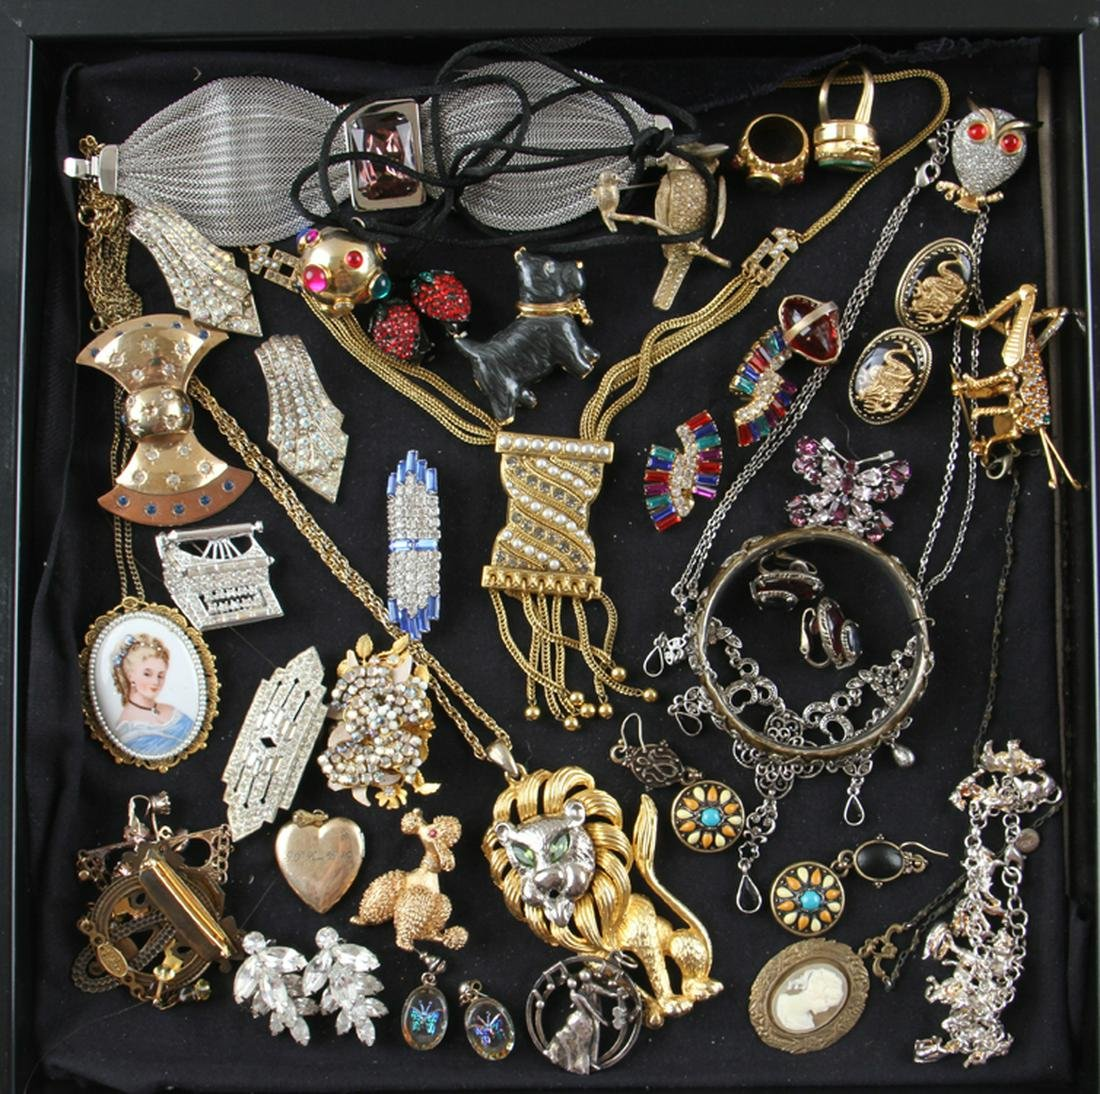 35 PIECE COLLECTION OF COSTUME JEWELRY IN CASE